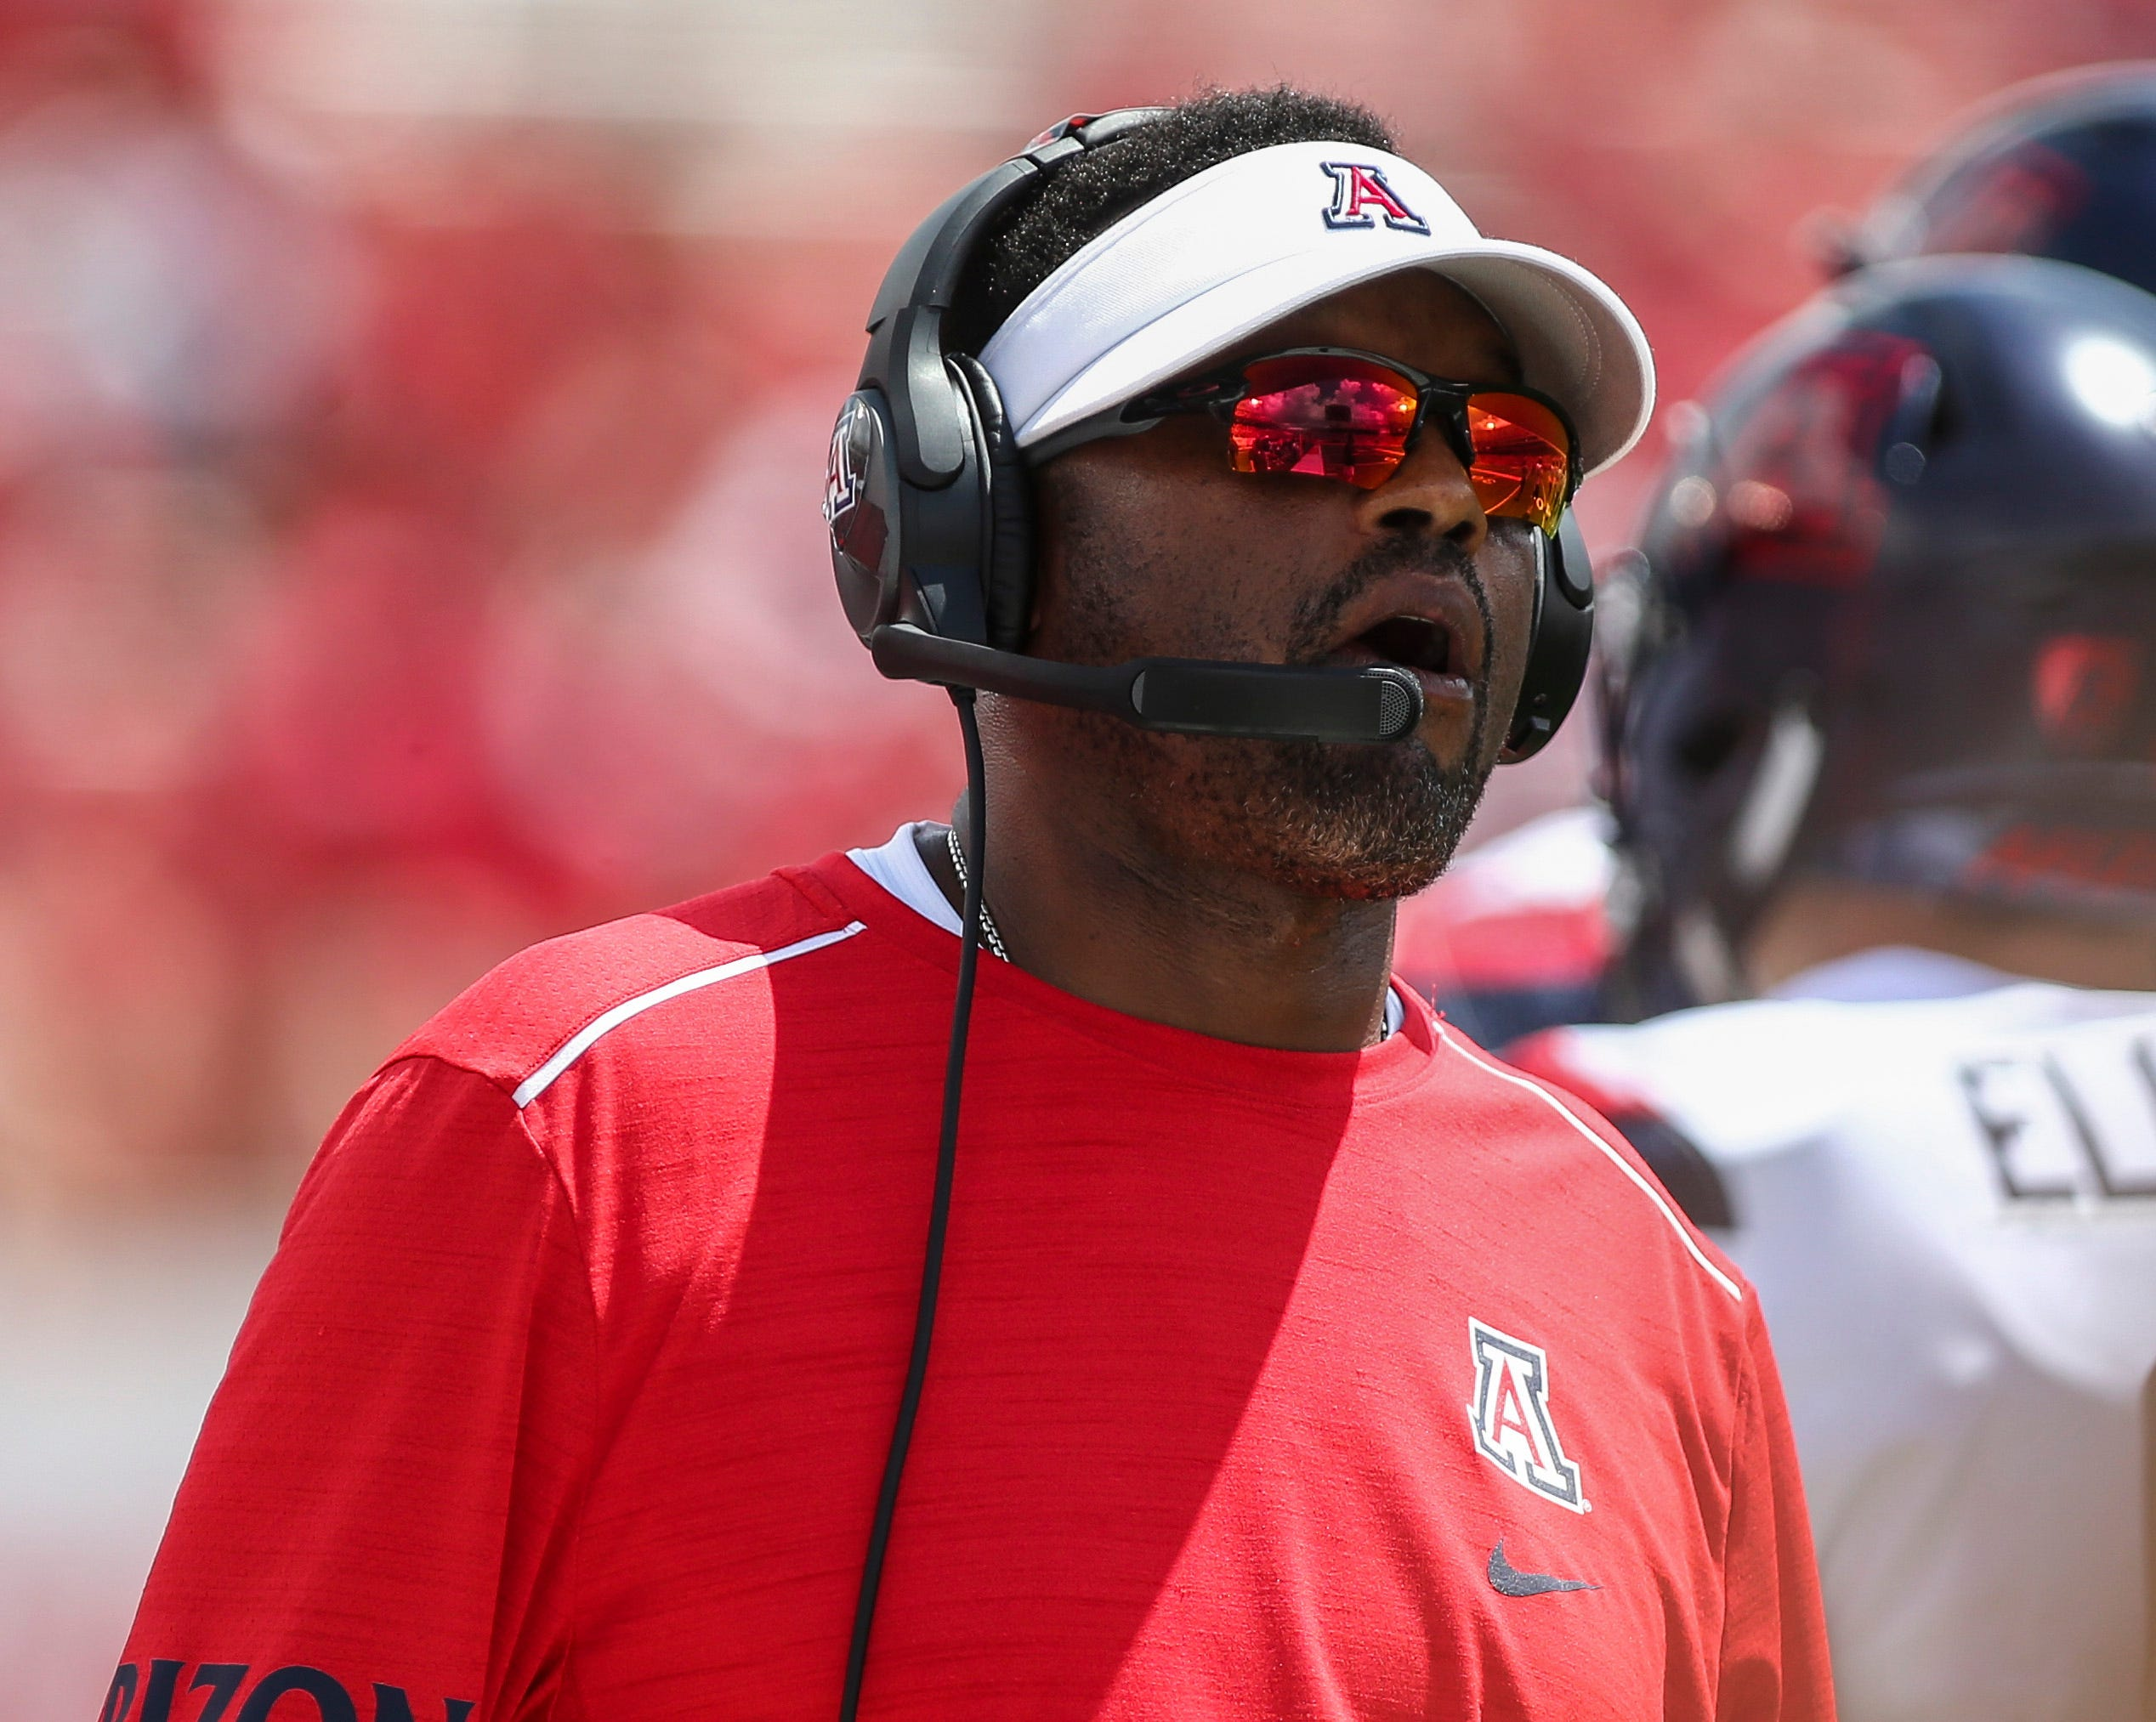 kevin sumlin arizona wildcats football blasted after loss to houston rh azcentral com